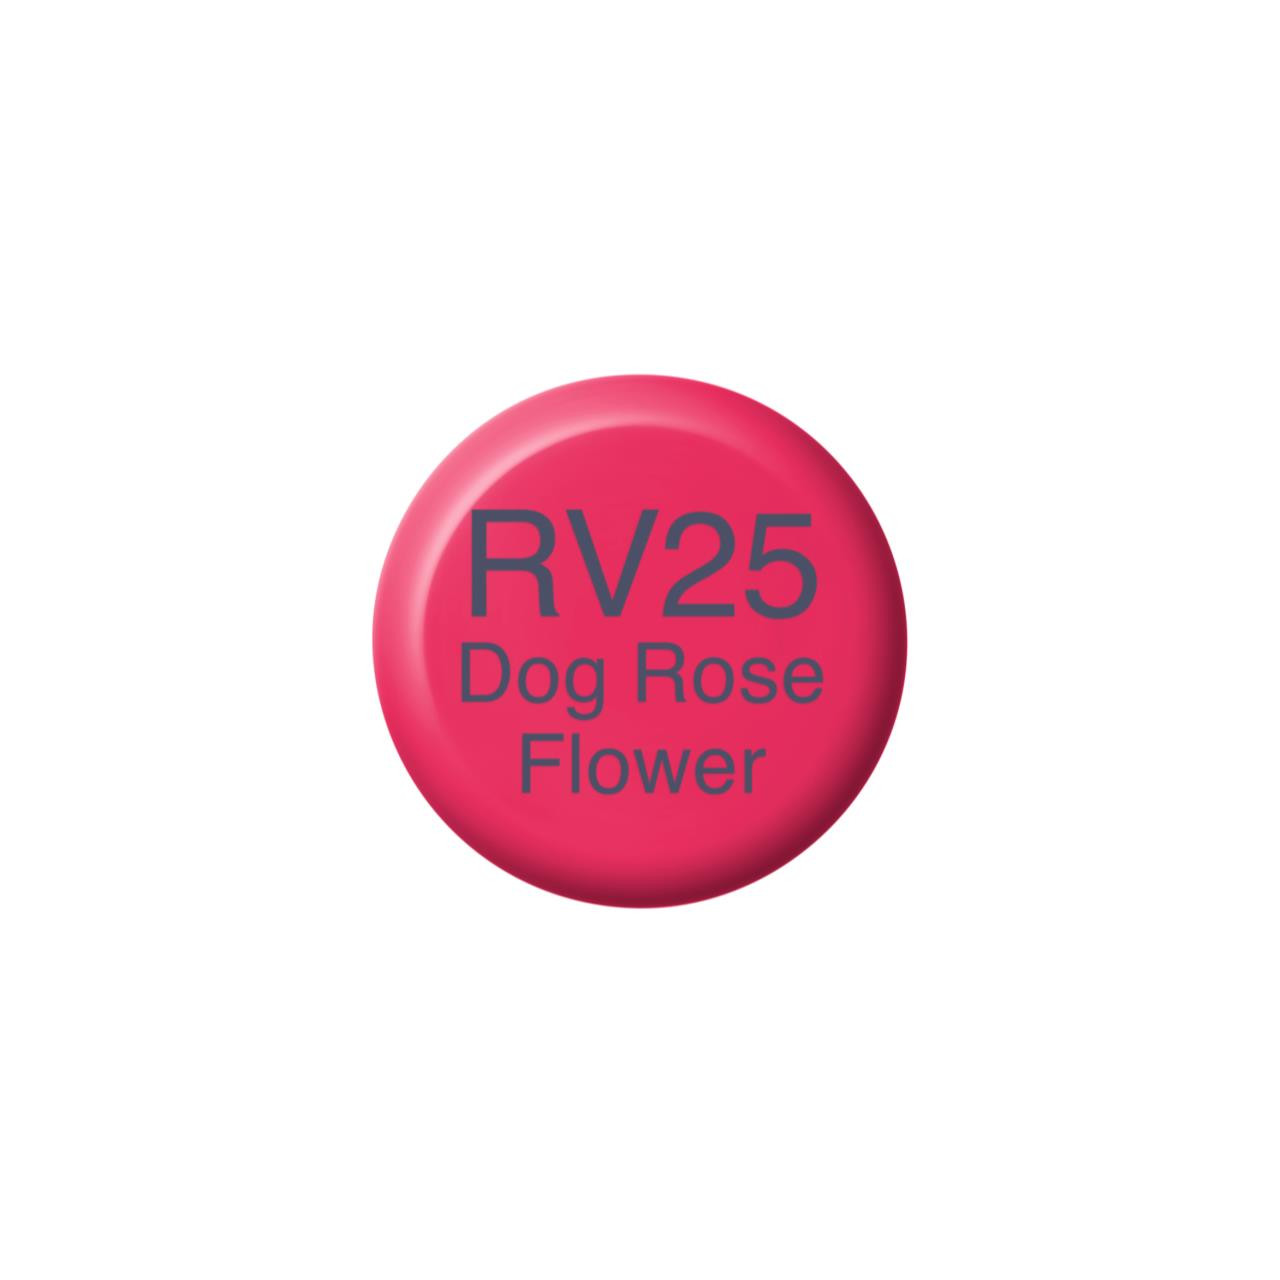 RV25 Dog Rose Flower, Copic Ink - 4511338057810